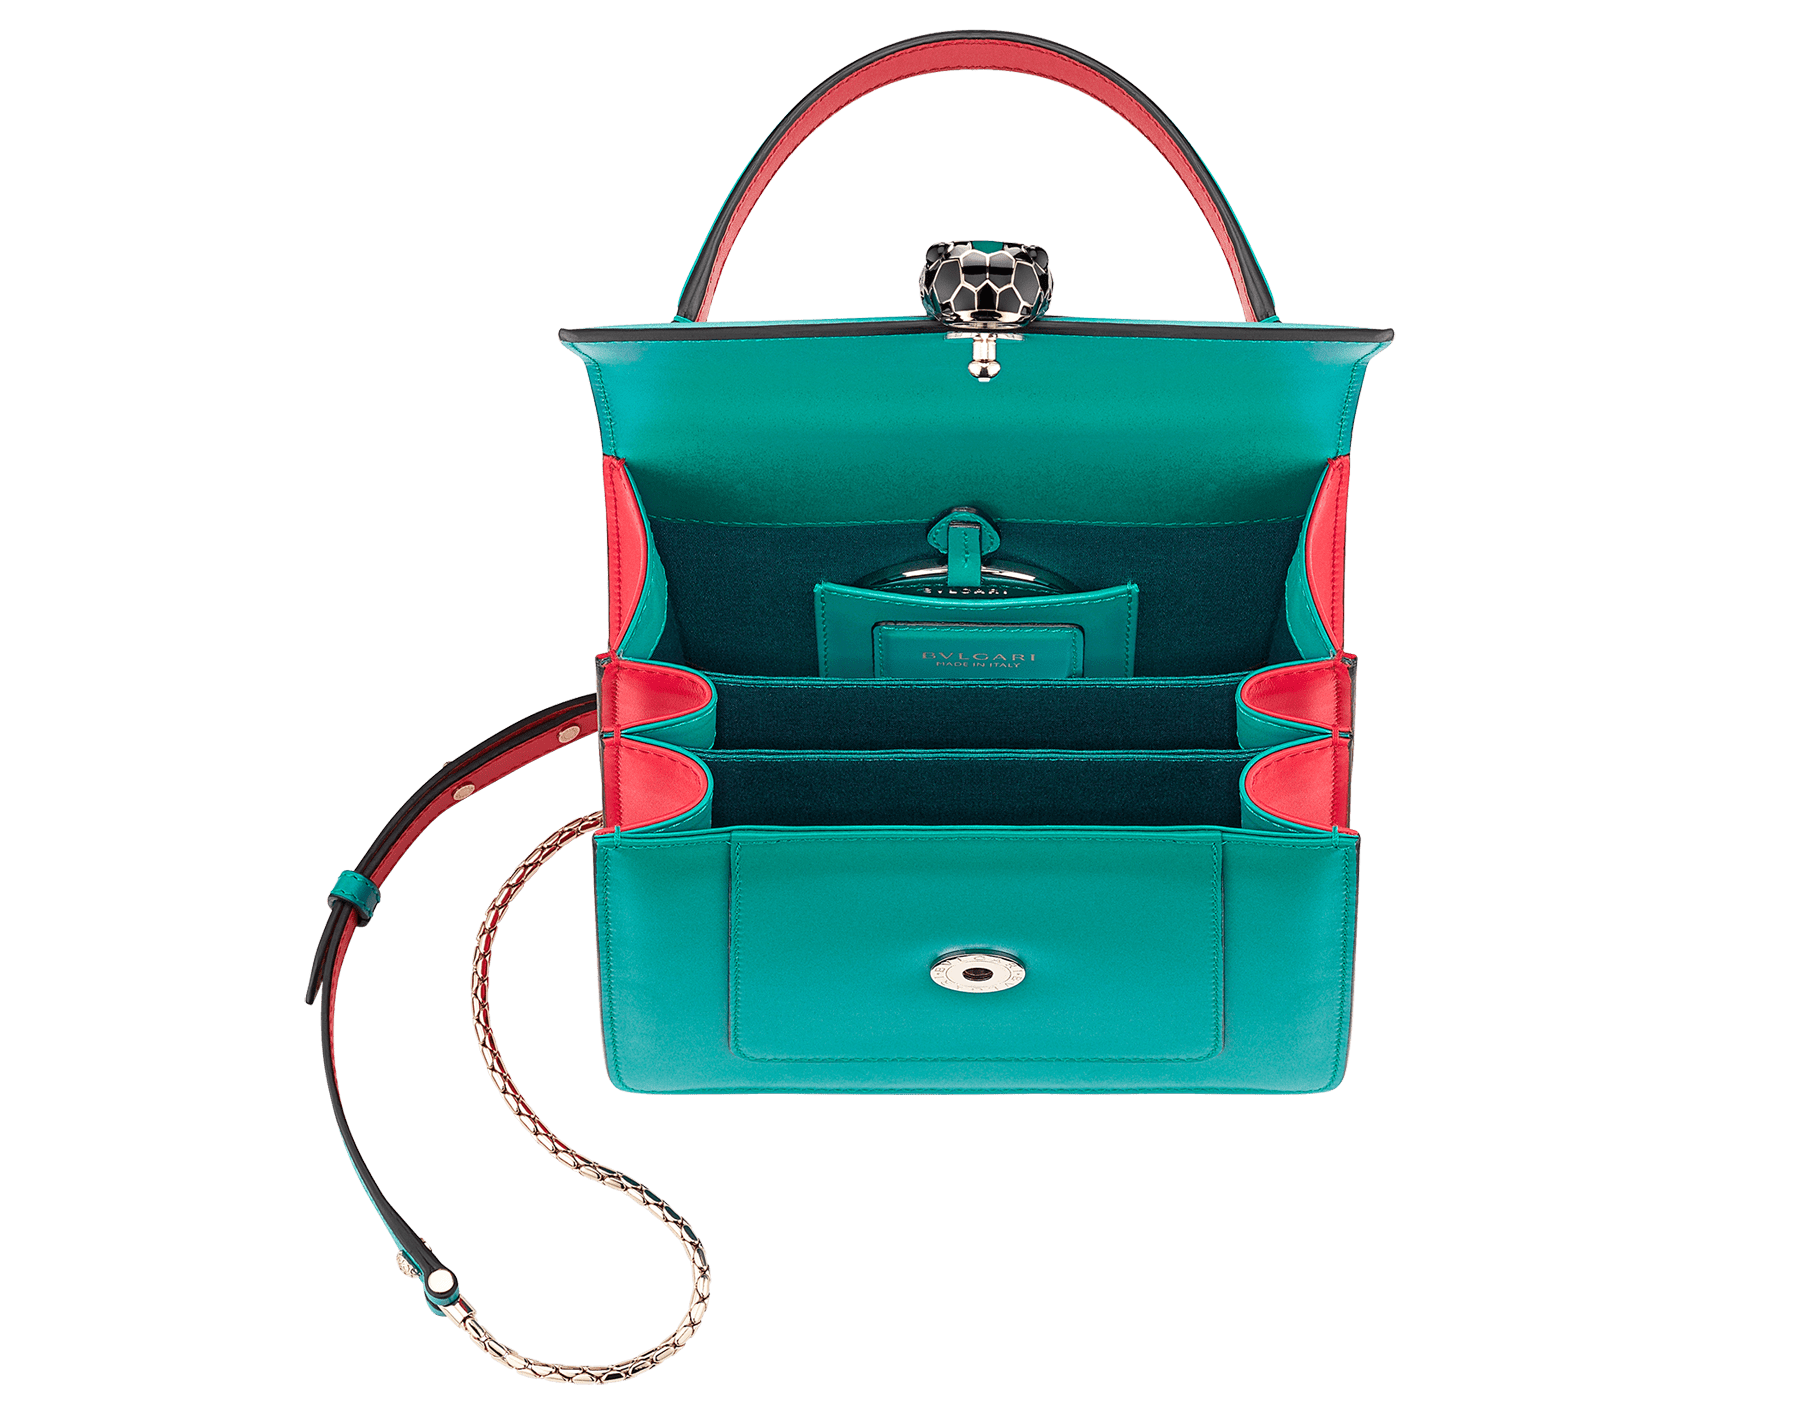 Serpenti Forever crossbody bag in tropical turquoise smooth calf leather body and sea star coral calf leather sides. Snakehead closure in light gold plated brass decorated with tropical turquoise and black enamel, and black onyx eyes. 287964 image 4